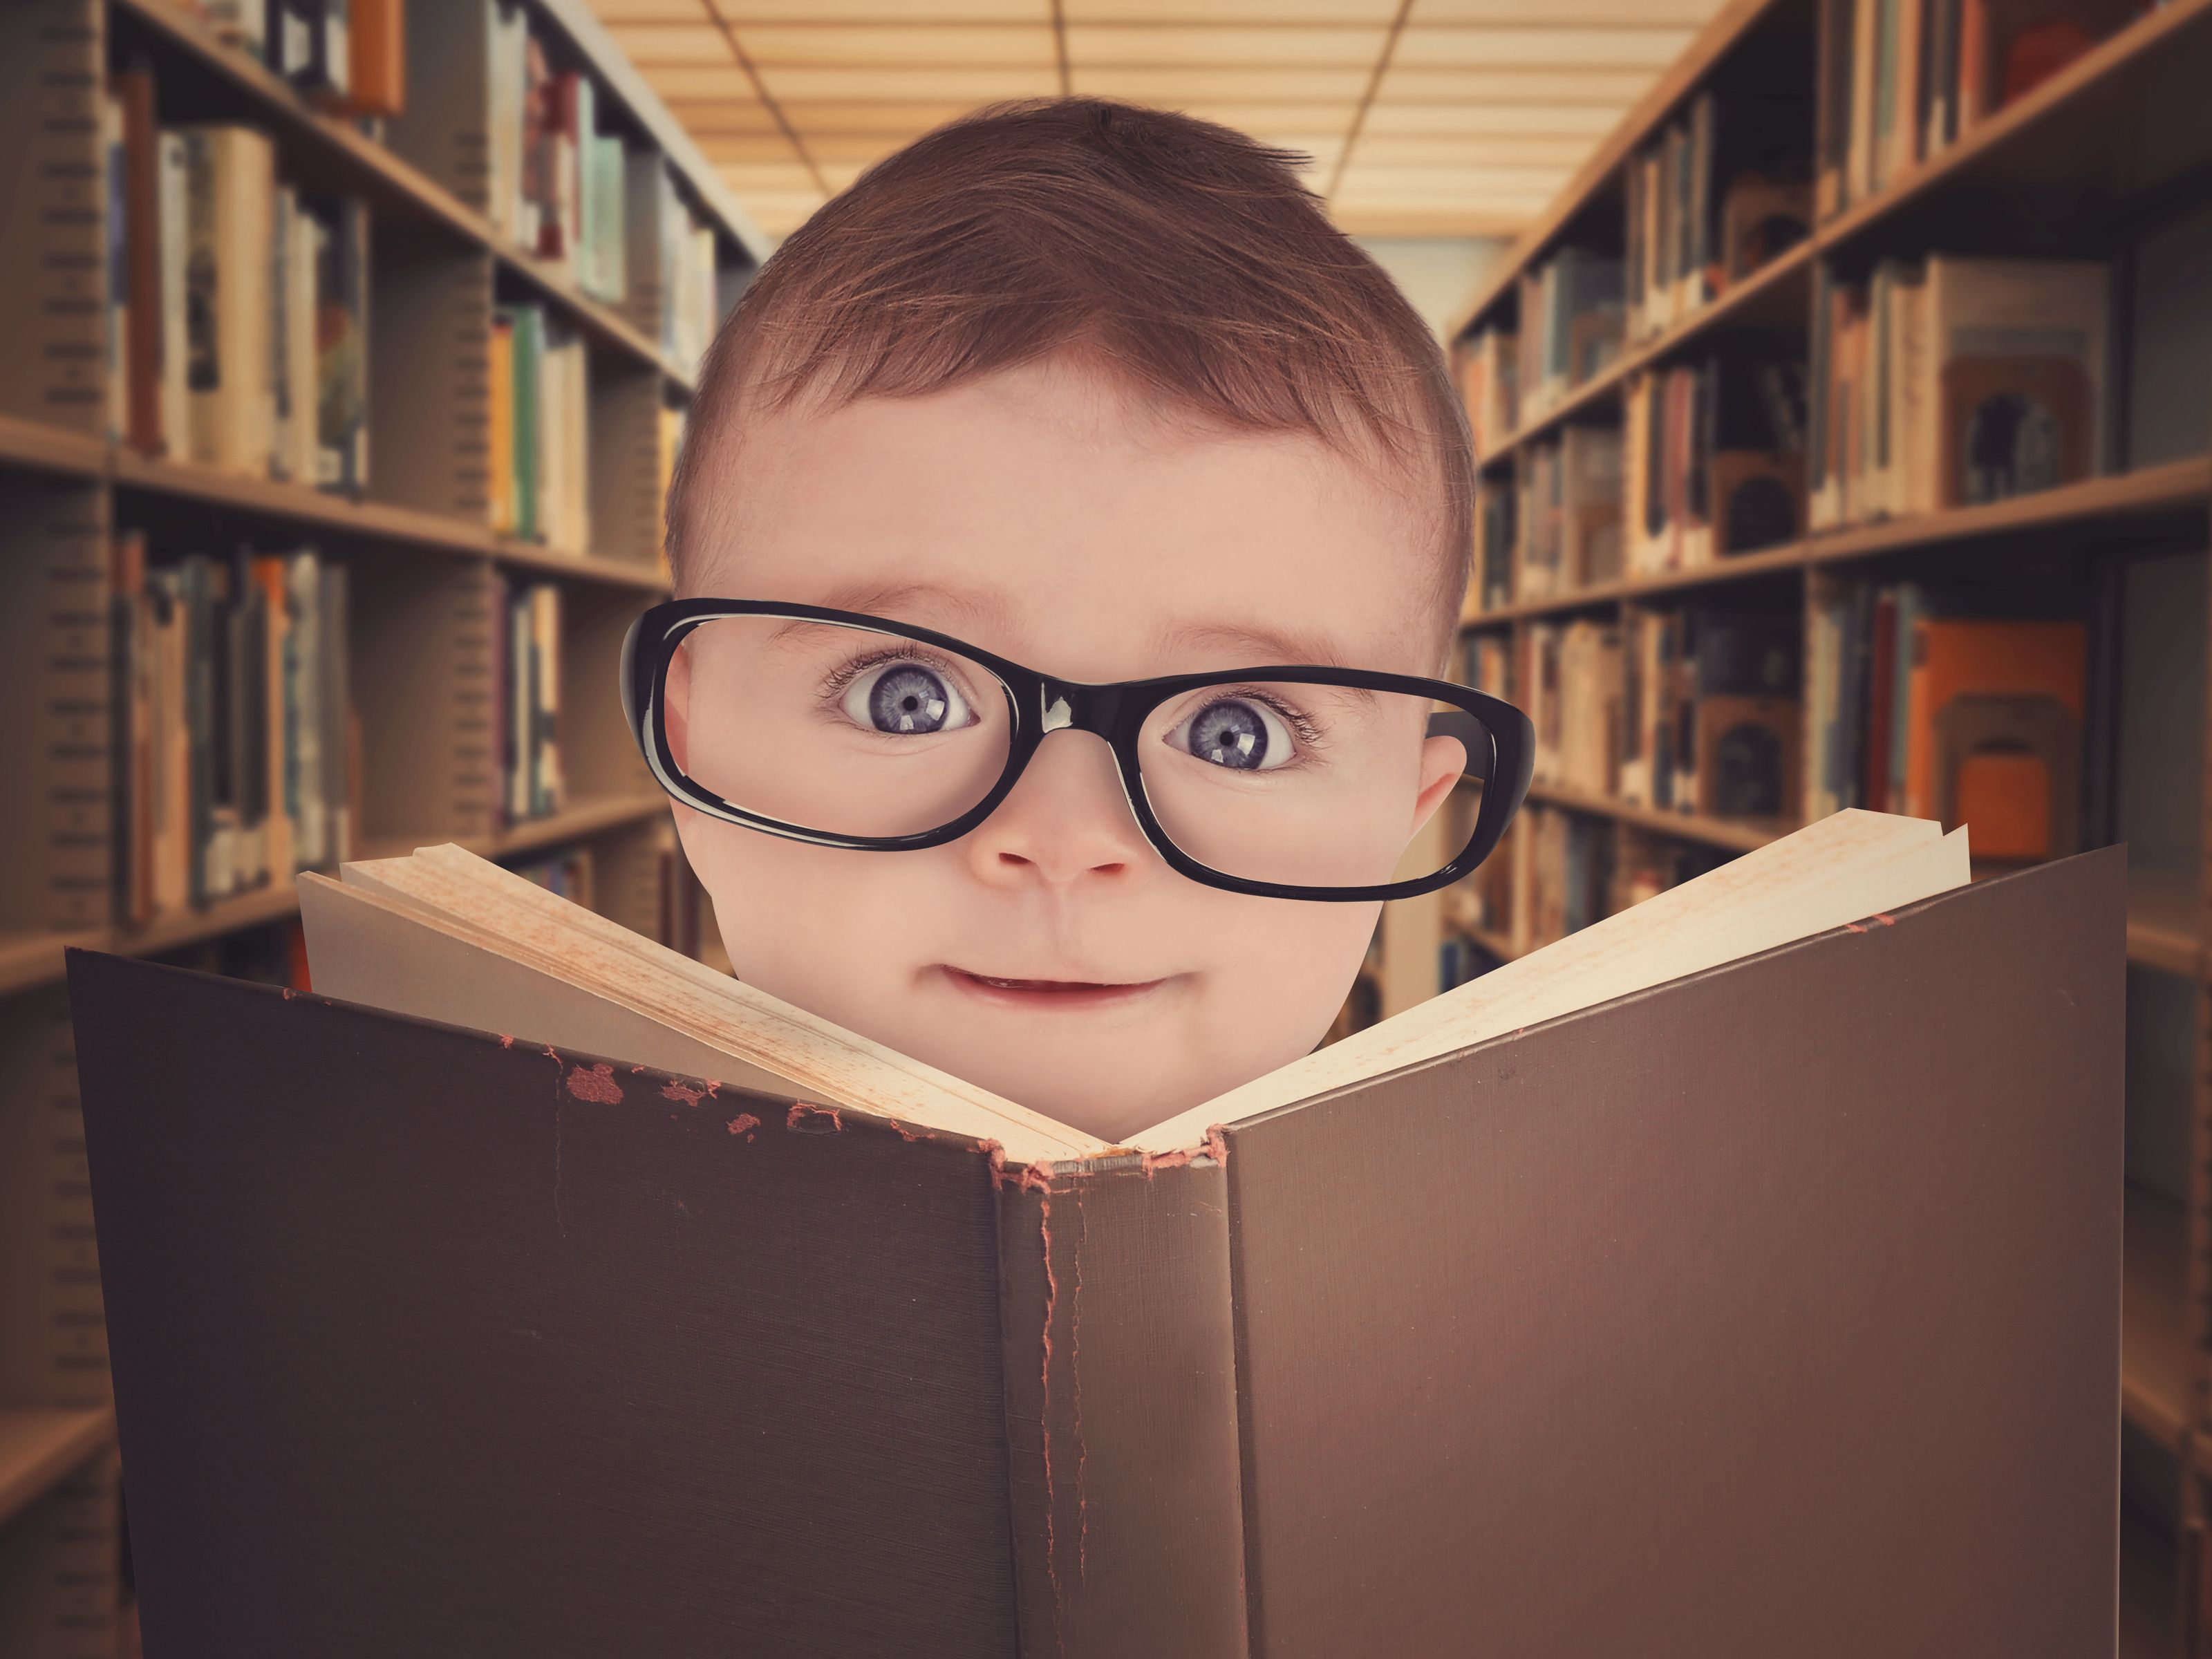 Here Are Some Clear Signs Your Baby Is Pretty Smart - 28 hilarious proofs kids always step ahead 8 genius